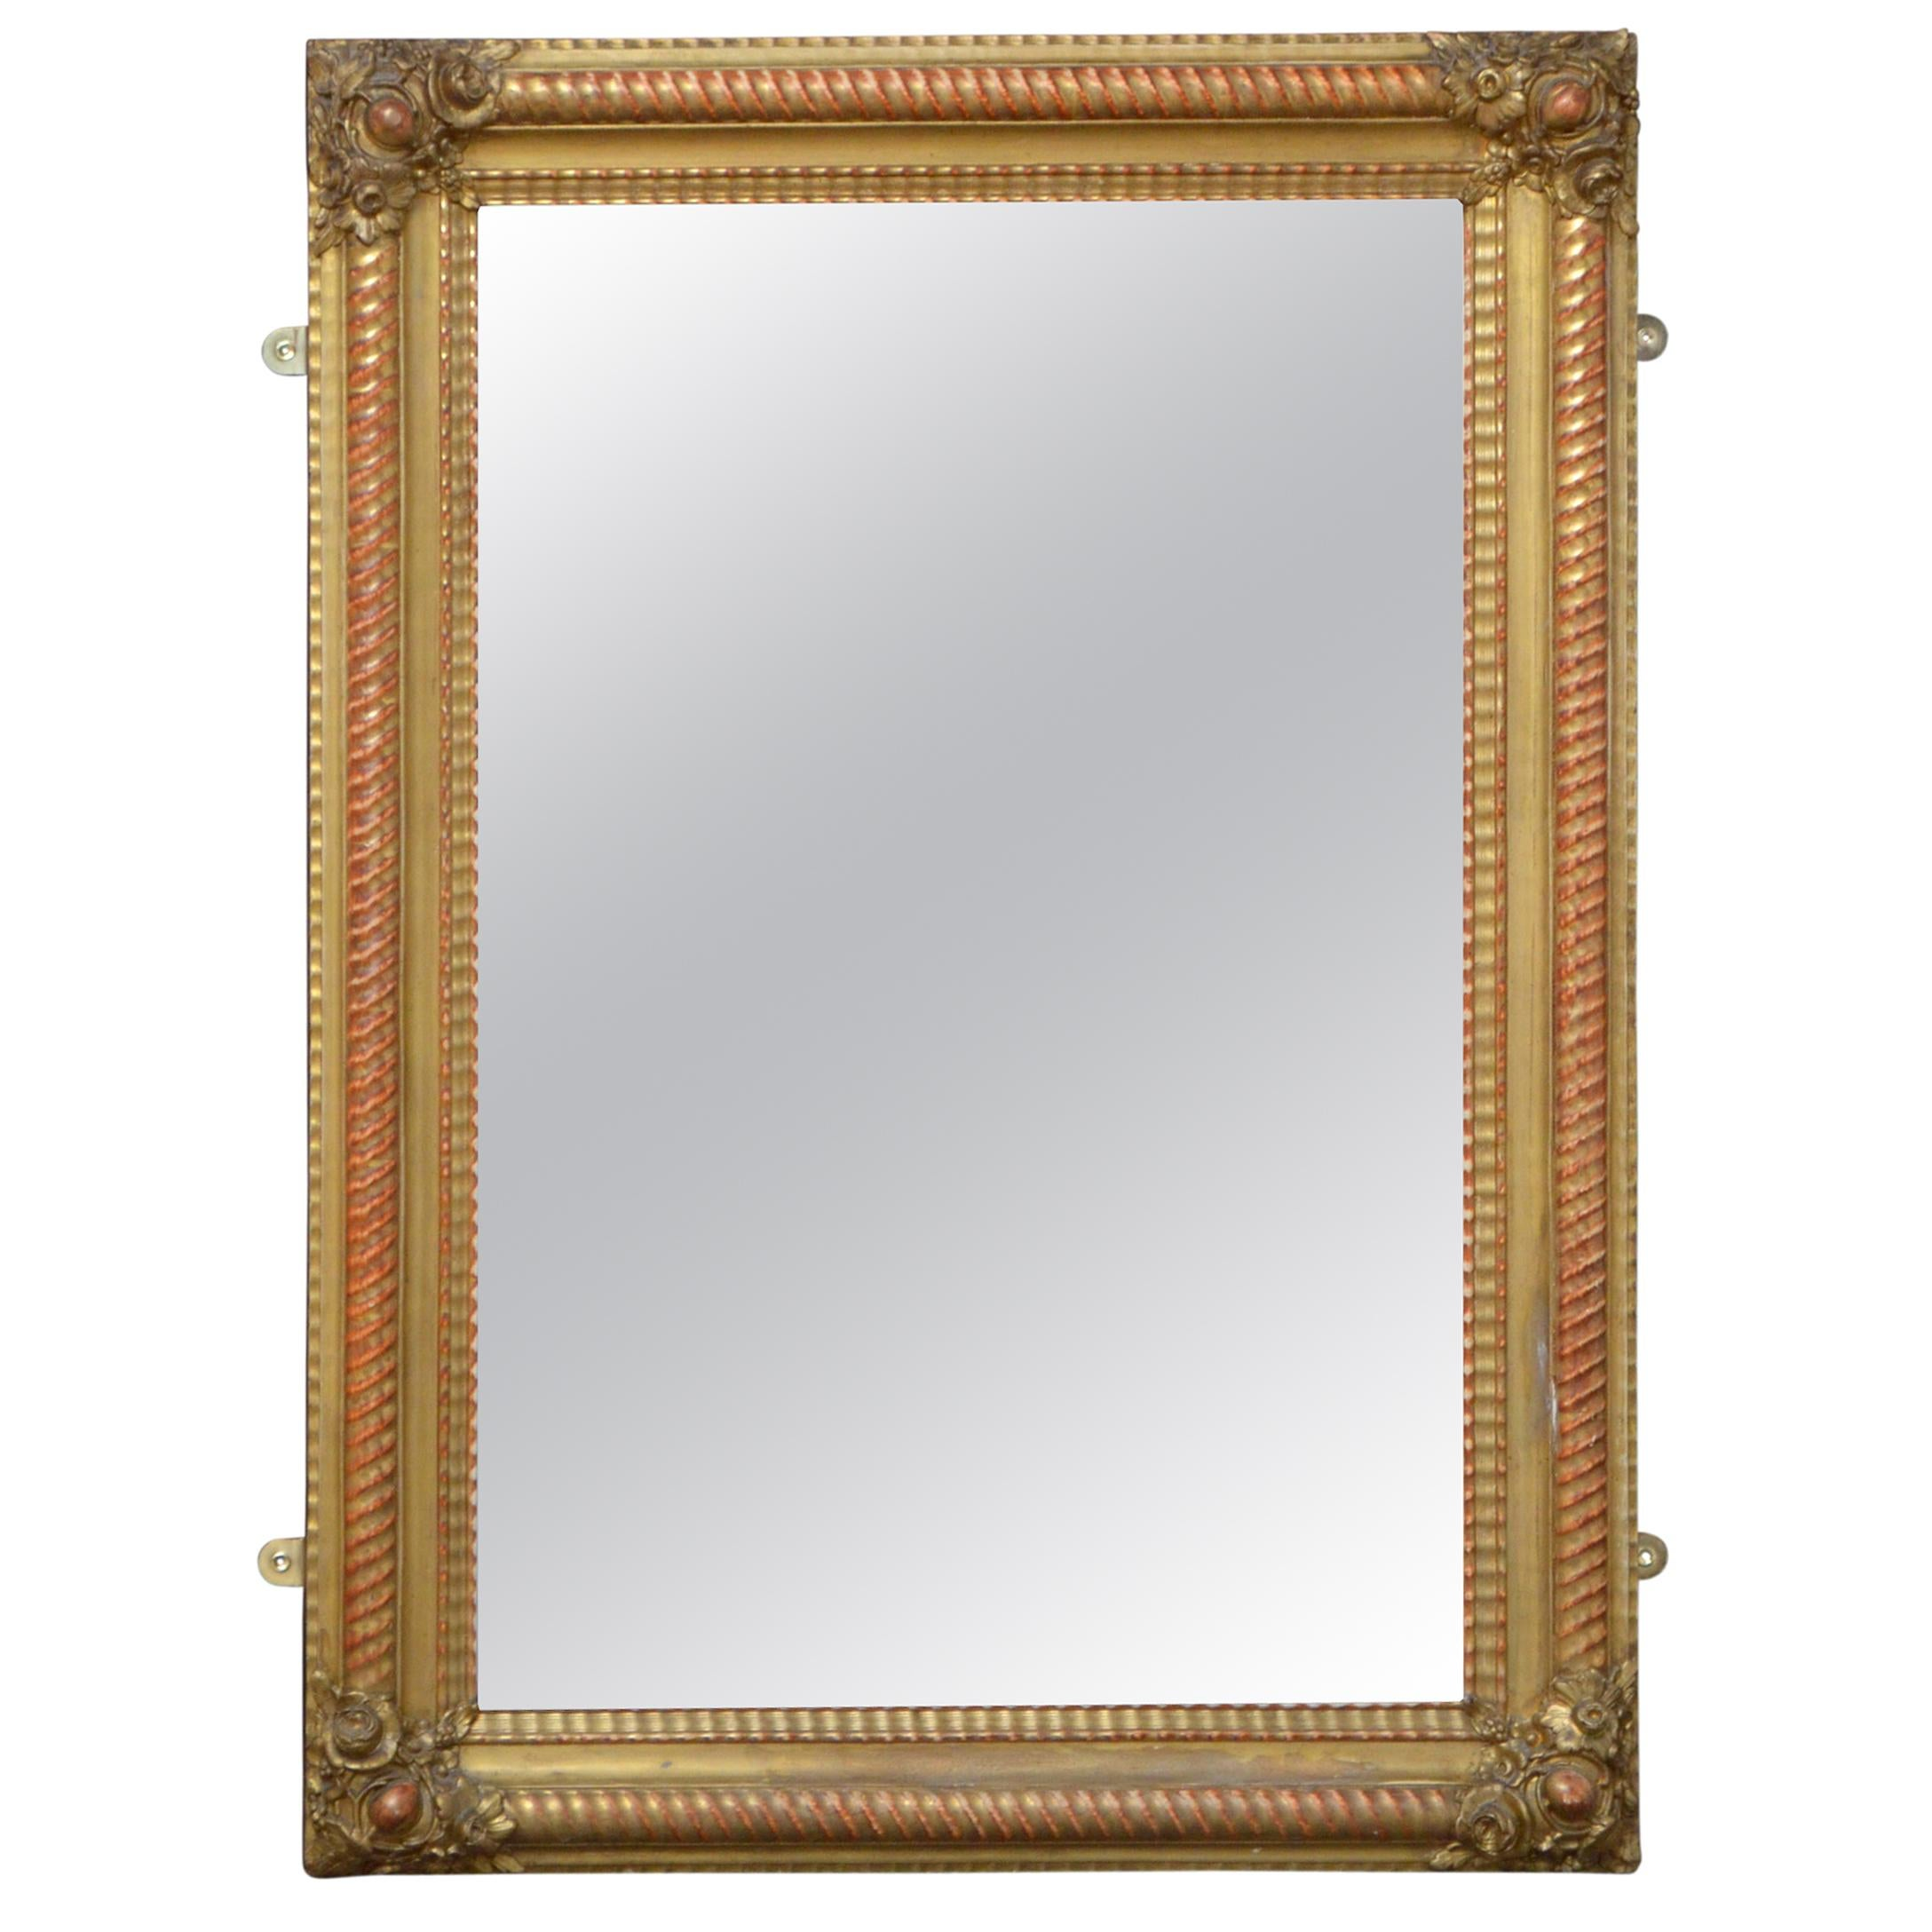 19th Century French Giltwood Wall Mirror Portrait or Landscape